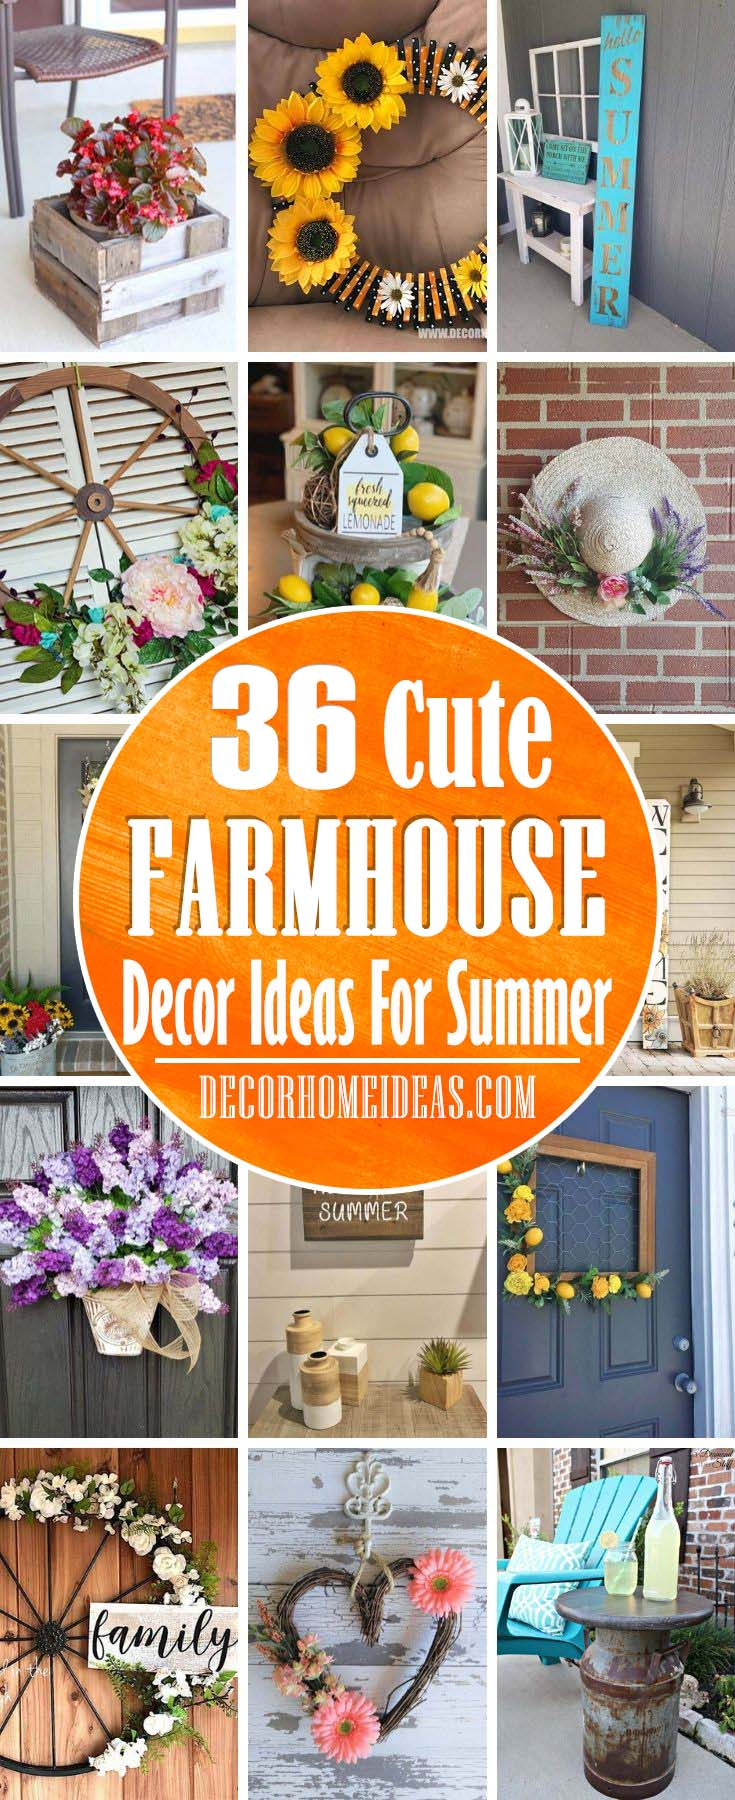 Summer Farmhouse Decoration Ideas These summer farmhouse decor ideas will add charm and sunlight in your home. Let the summer mood fill your home and heart. #farmhouse #summer #decorhomeideas